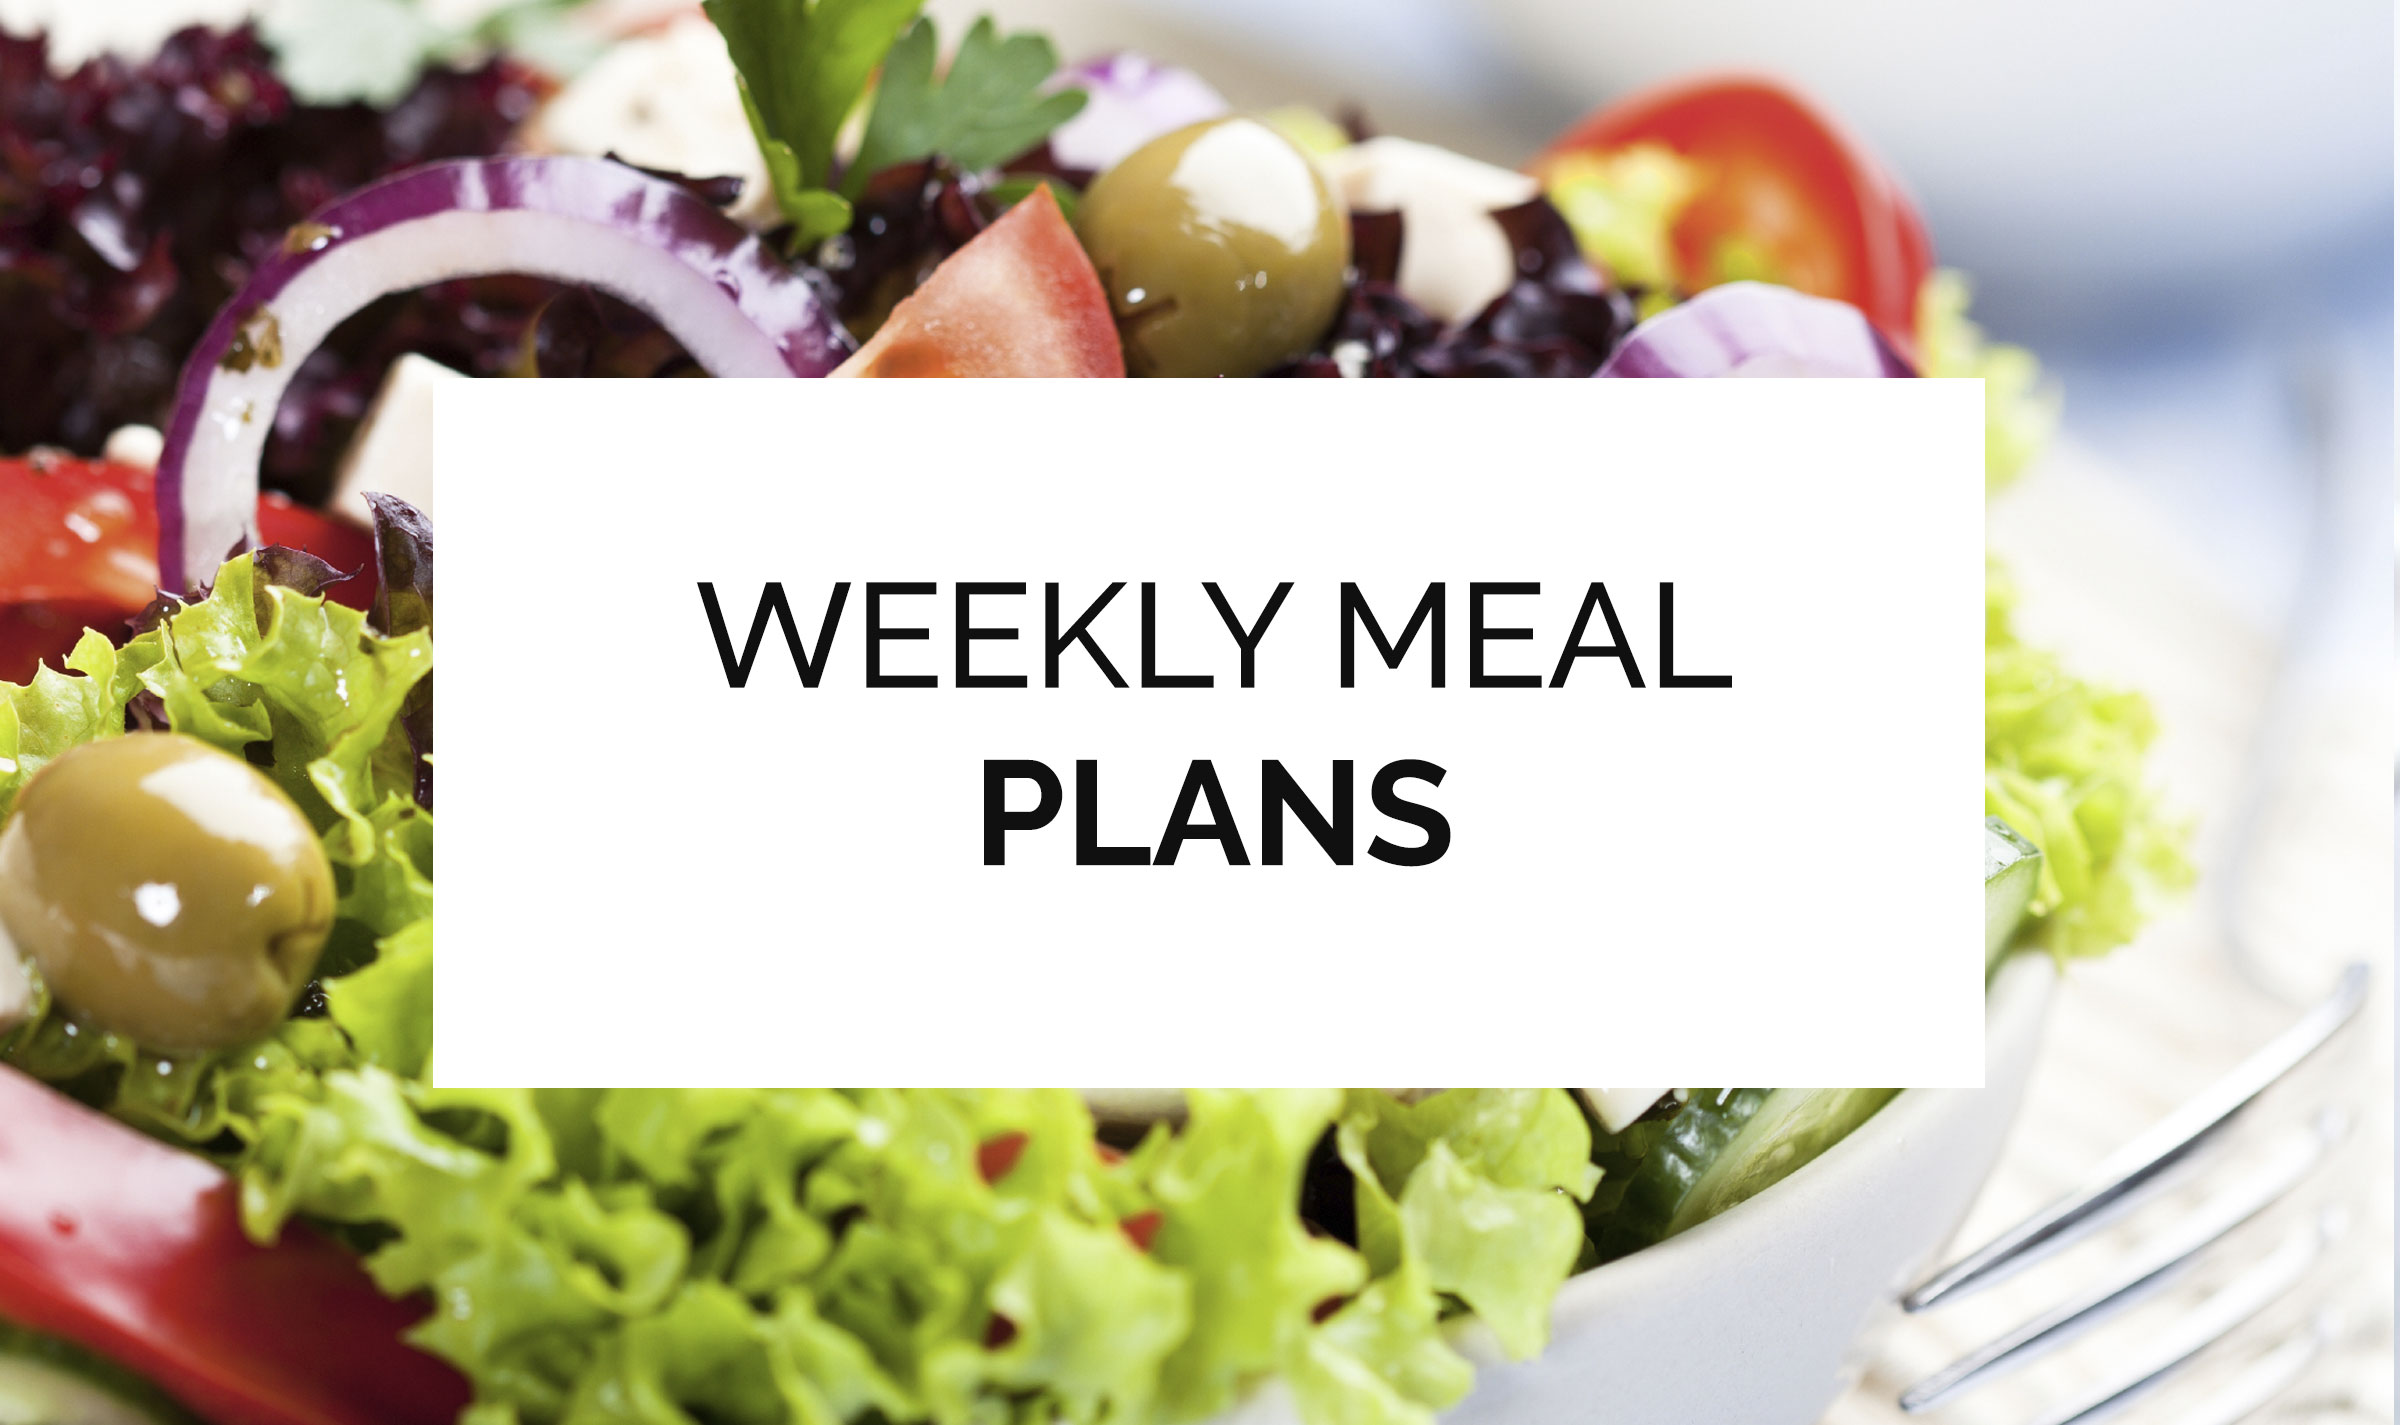 image showing meal plan heading